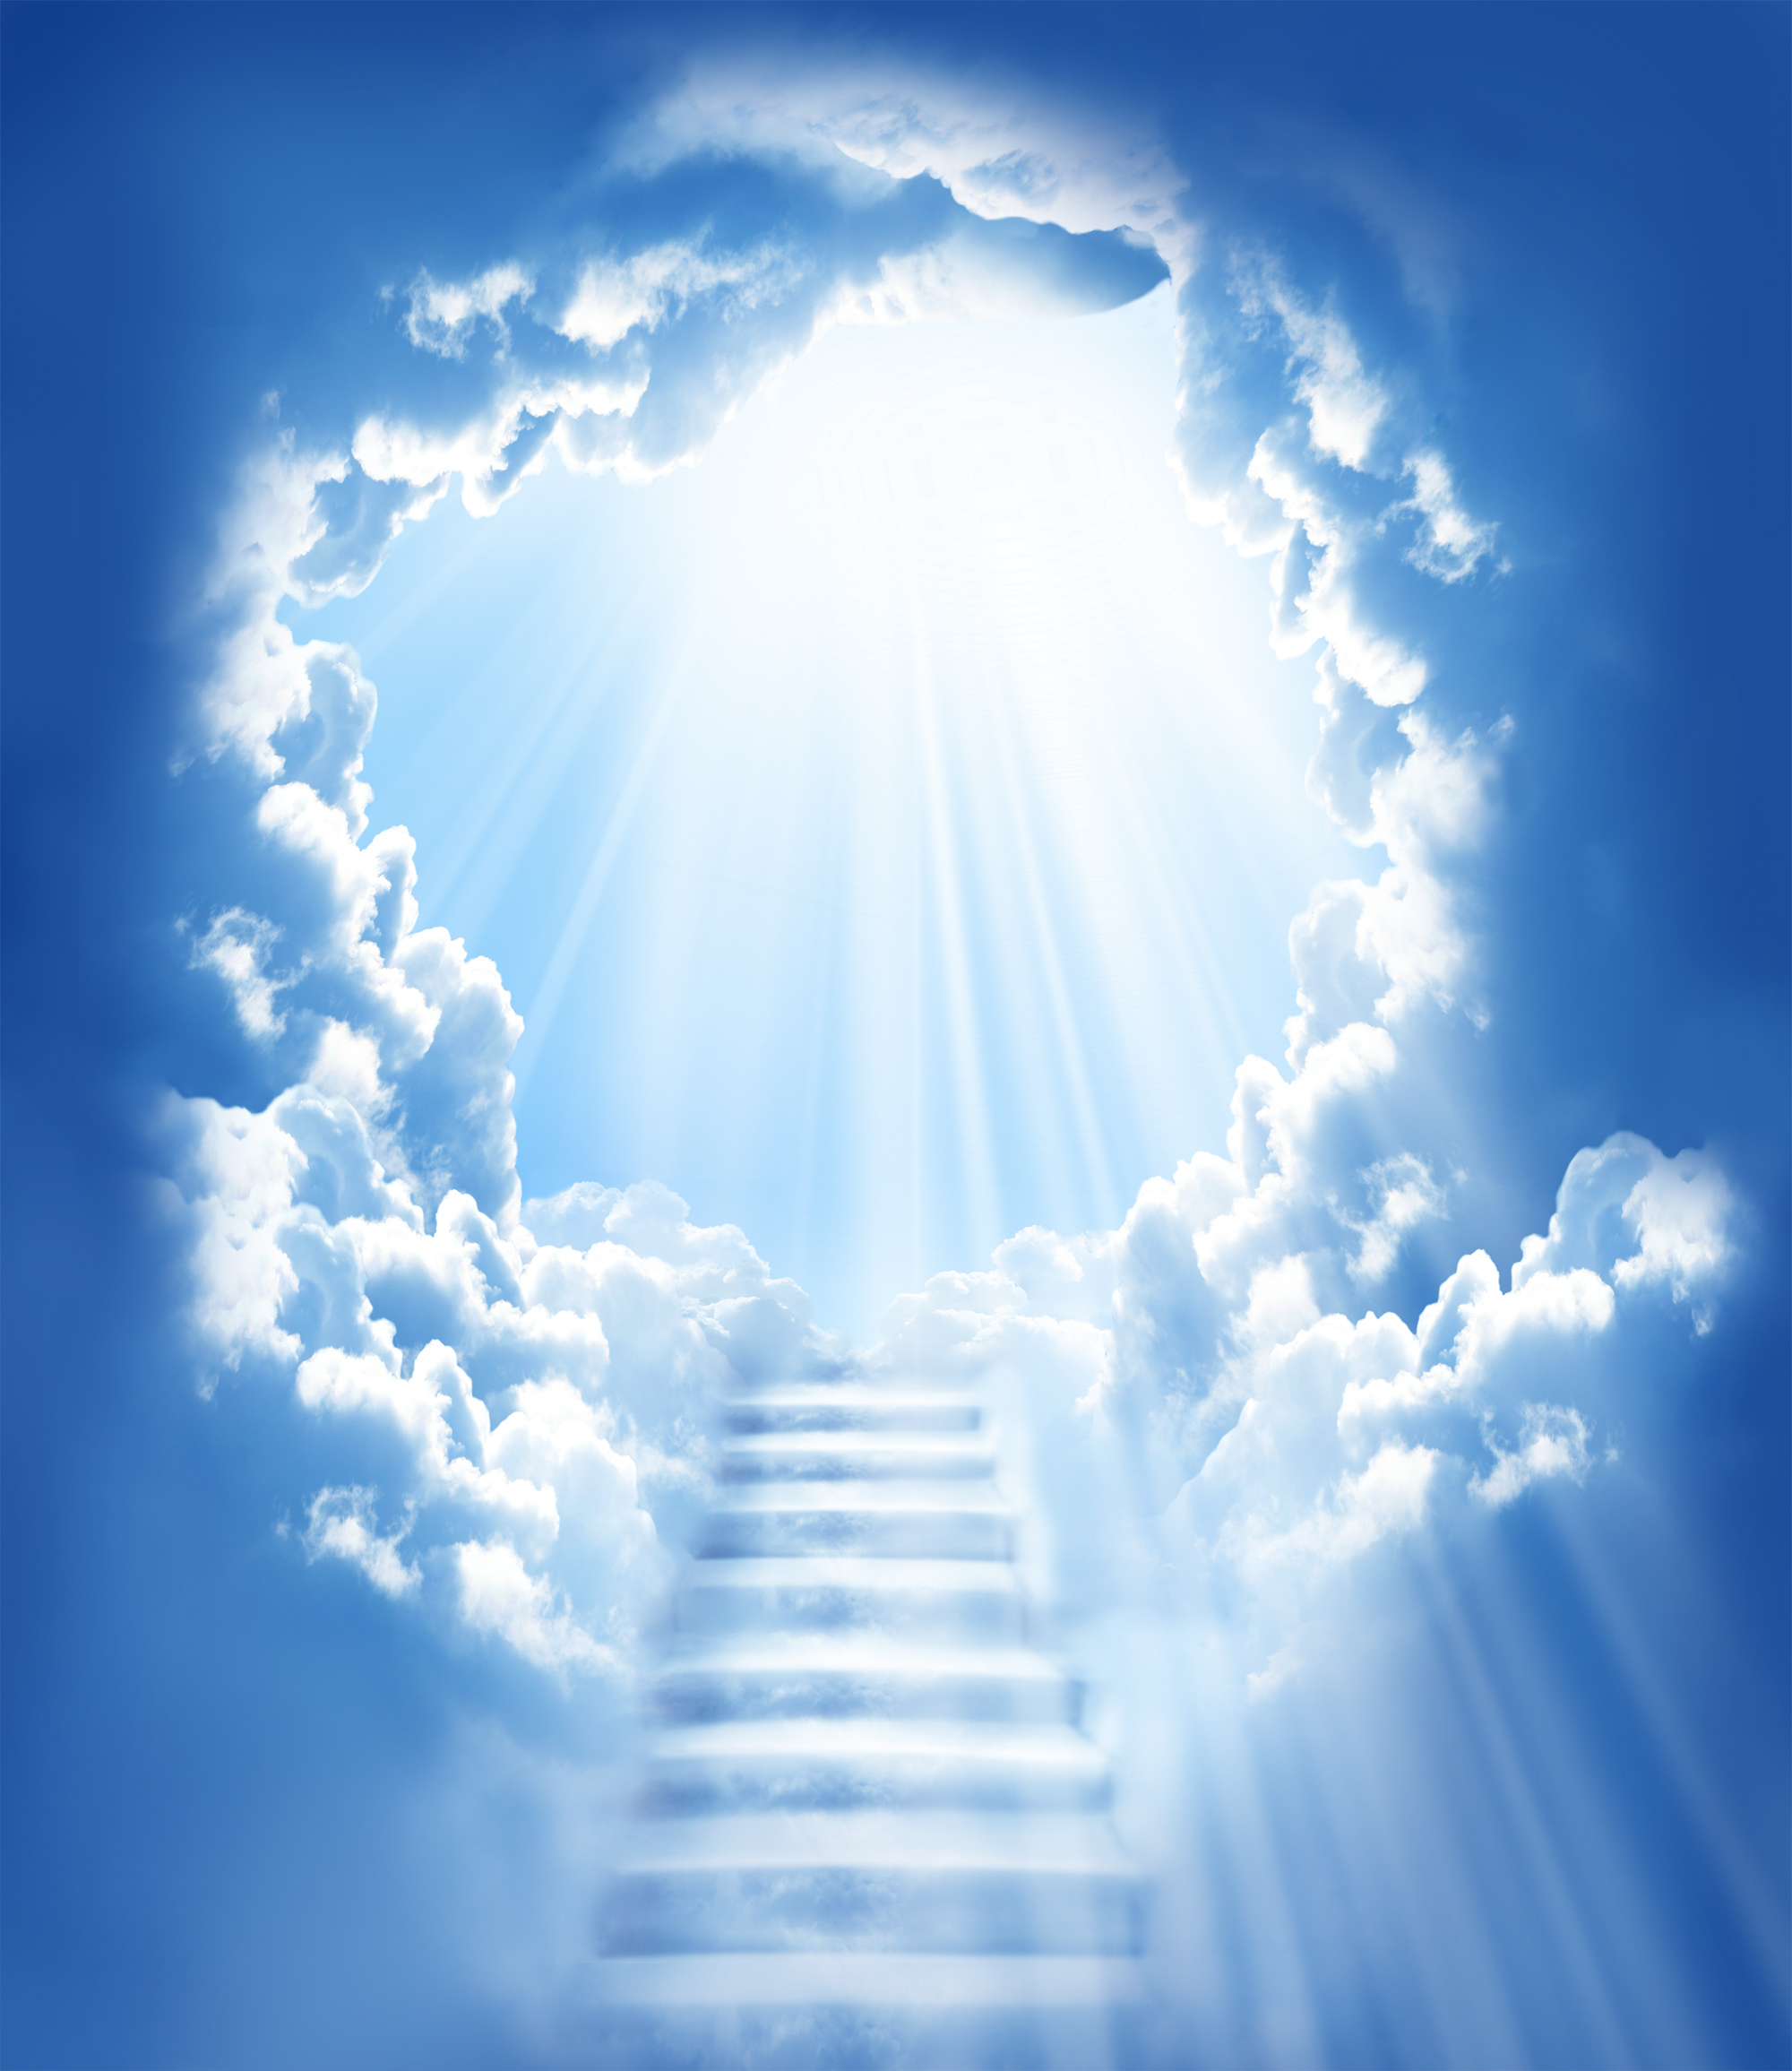 Heaven clipart real.